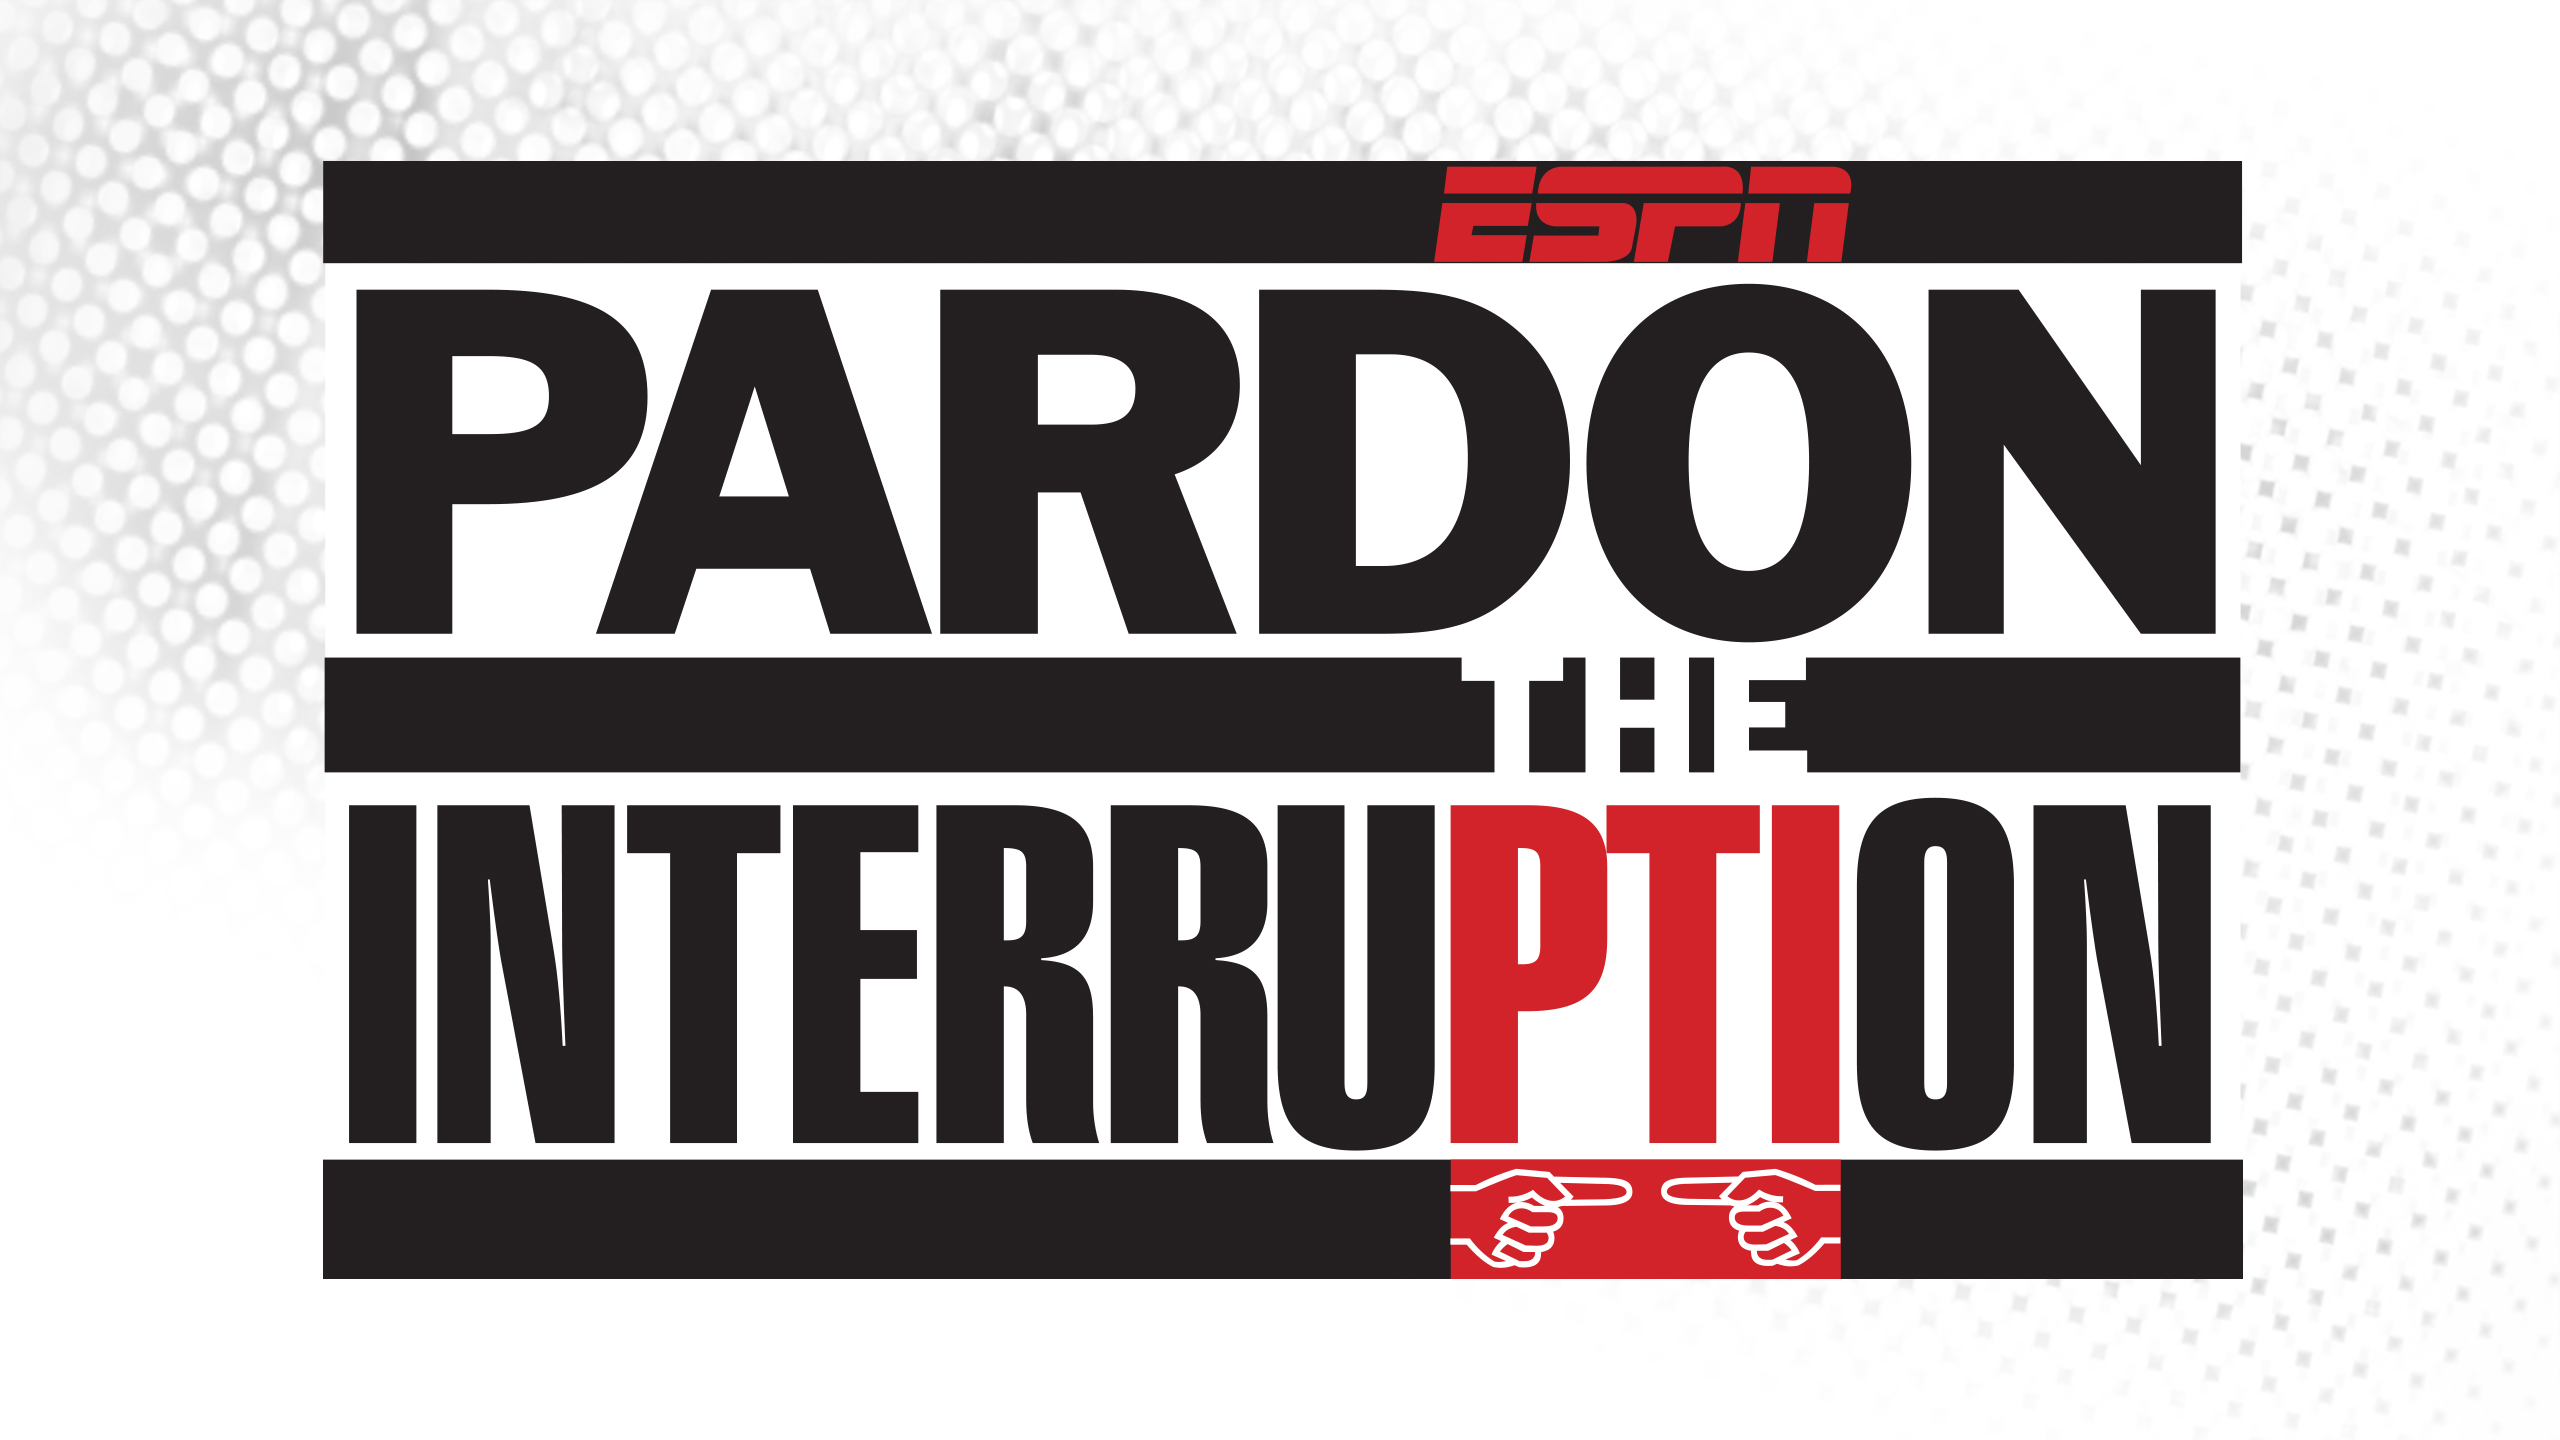 Wed, 10/17 - Pardon The Interruption